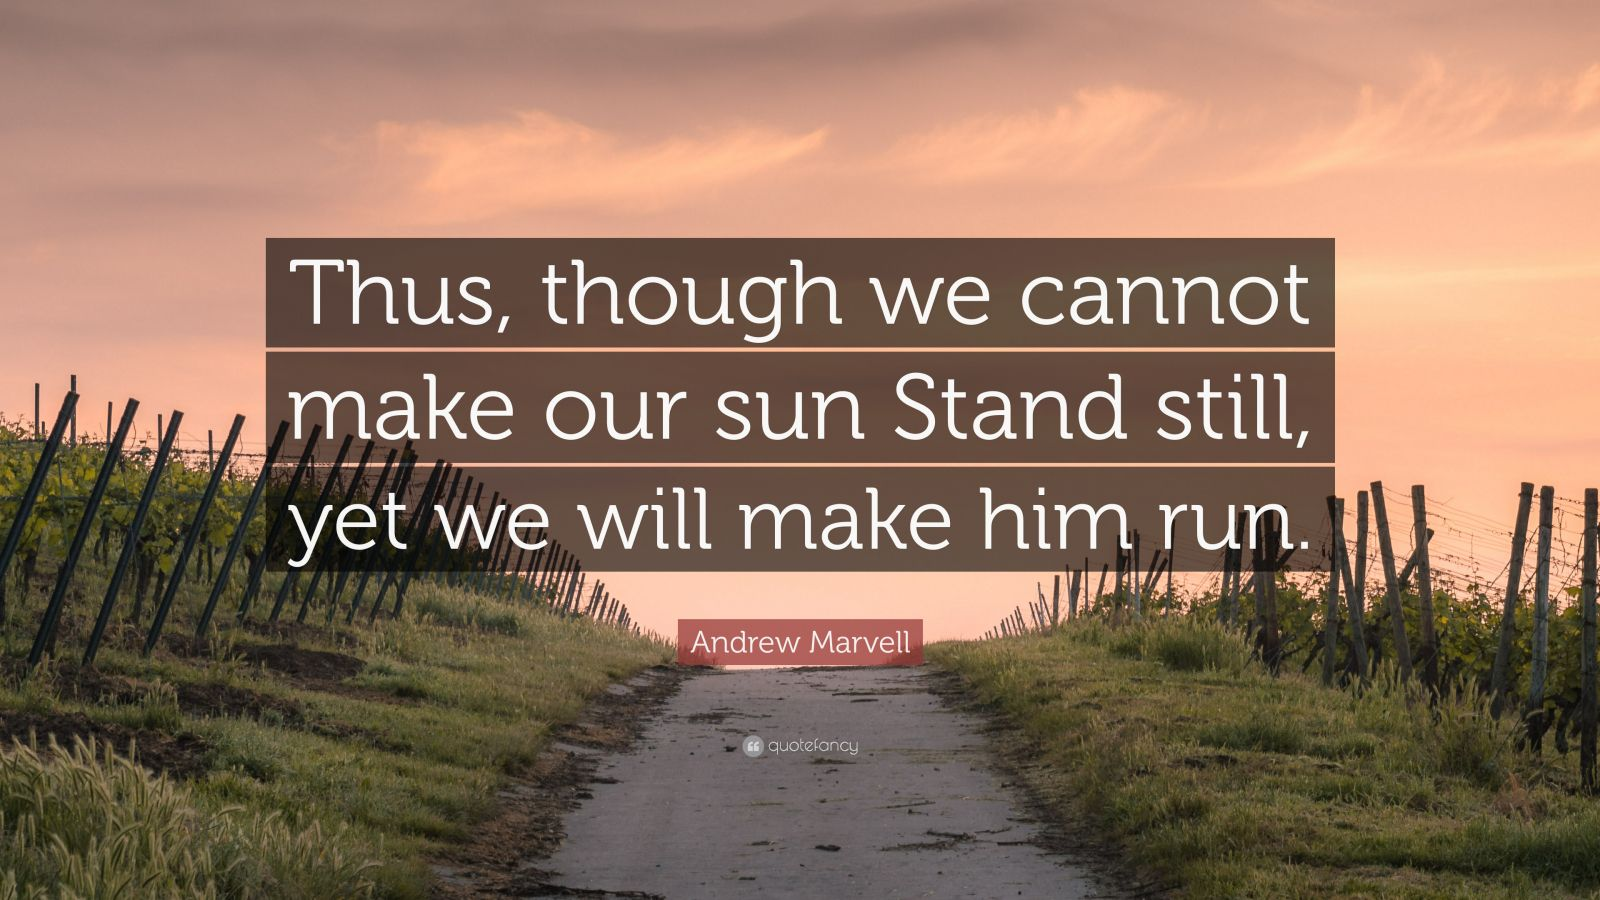 """Andrew Marvell Quote: """"Thus, though we cannot make our sun Stand still, yet we will make him run."""""""